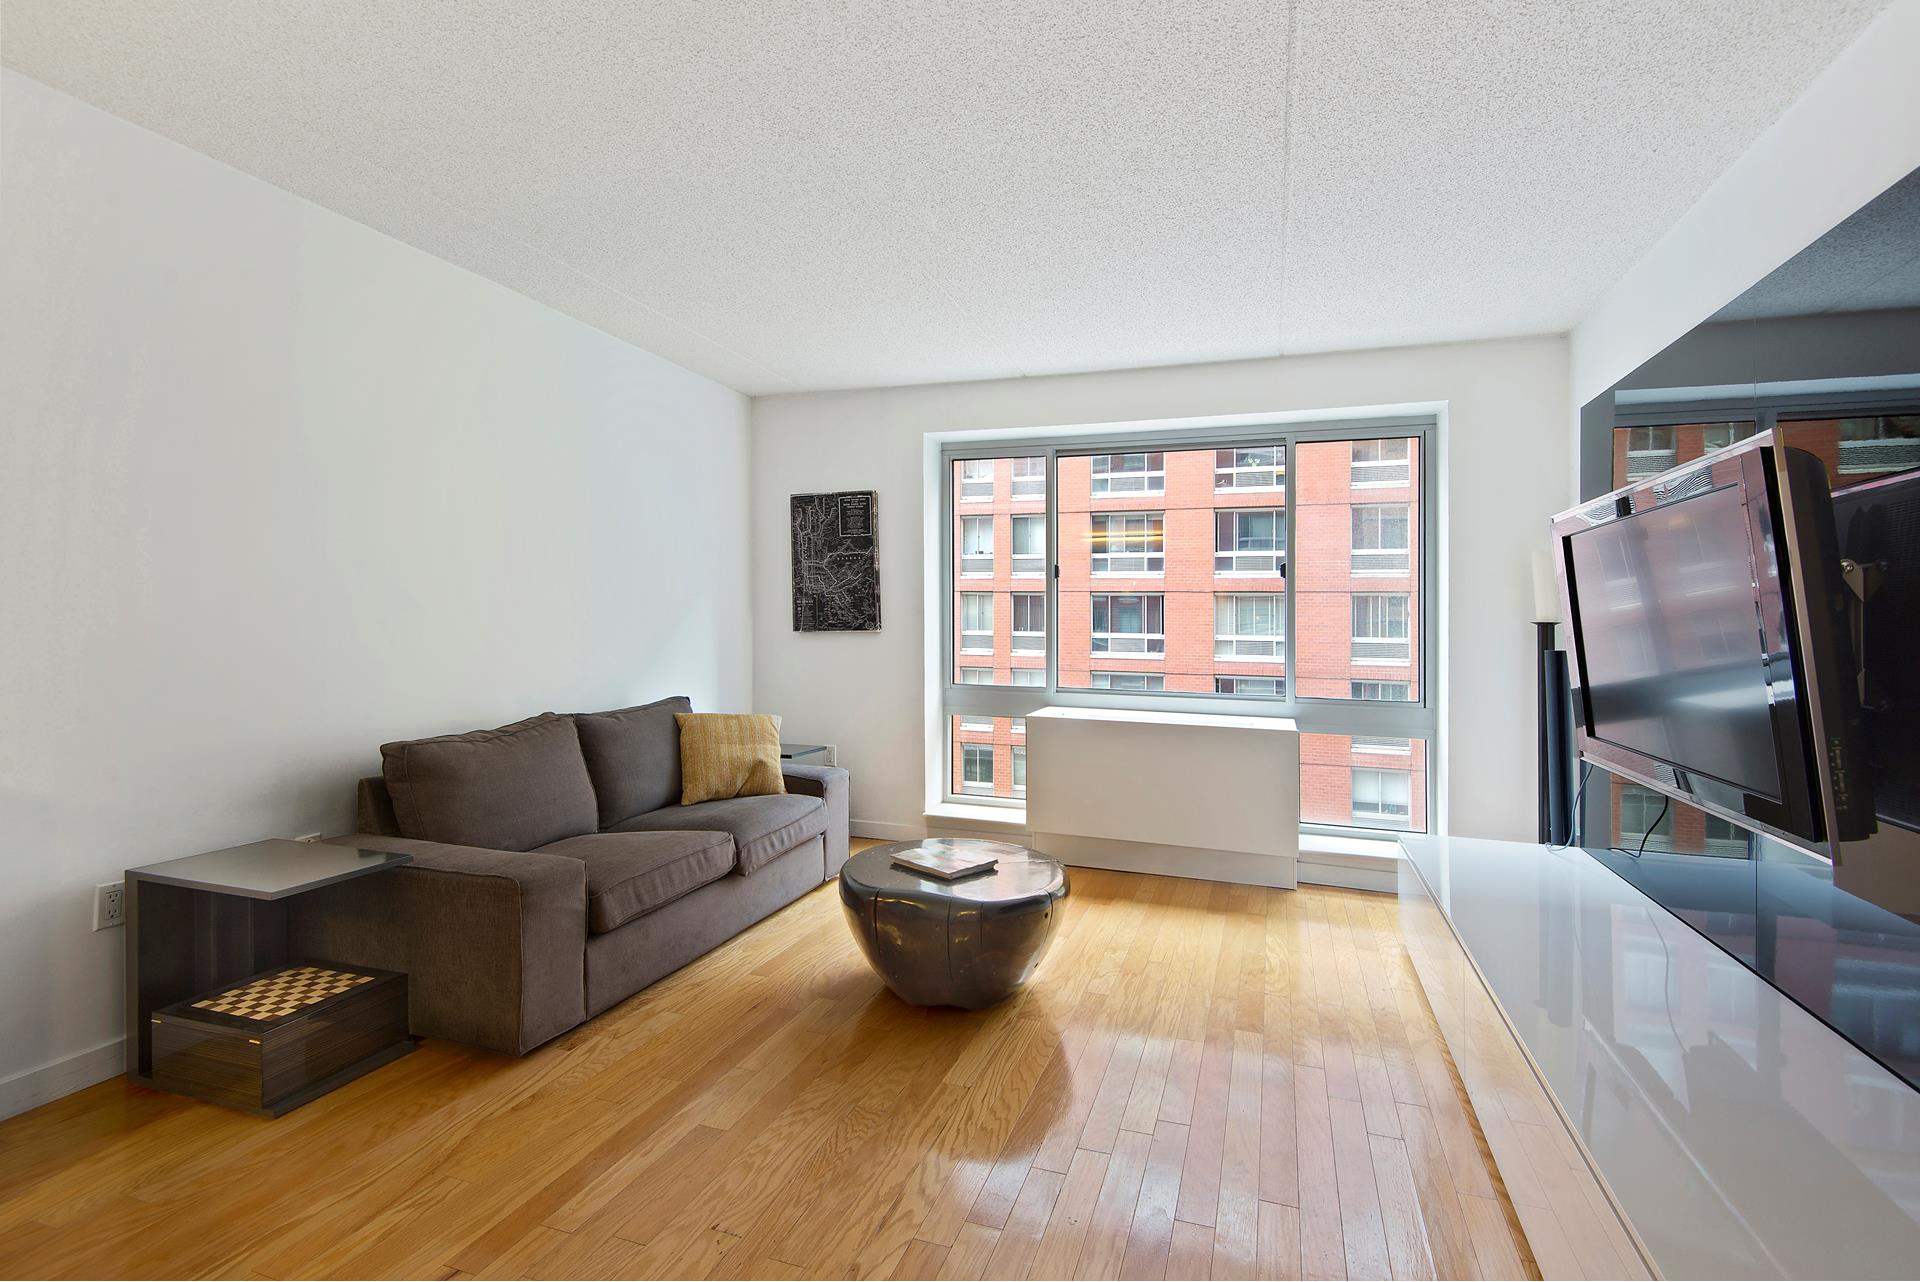 This is a large and sunny one-bedroom, one-bathroom home in a luxury condominium right in the heart of Chelsea. The kitchen has a huge island, granite counter tops, full-sized stainless steel appliances, including dishwasher, cayenne maple cabinetry and   sleek porcelain flooring. The bathroom is surrounded in warm, earth-tone Amarillo stone, three-paneled mirror medicine cabinet, vanity cabinet, and granite sink top. The sleek hardwood floors and private washer/dryer finish off this perfect home.    555 W. 23rd St. is a luxury condominium, with 24-hour doorman, live-in super, on-site property manager and full staff. The amenities are immense with laundry room, complimentary gym, massive courtyard with outdoor furnishings, plantings and fountain, renovated   lobby, two newly-renovated lounges, package room, dry-cleaning and cleaning service, parking garage and bike storage. A new Whole Foods is just a few blocks up, along with tons of restaurants, shopping, CVS (across the street), galleries, the Highline, Hudson   Yards a few blocks north and Chelsea Market a few blocks south. Hudson River Park is right across the avenue with parks, bike and running trails, dog park, soccer field, and Chelsea Piers. This is a pet-friendly building and neighborhood.